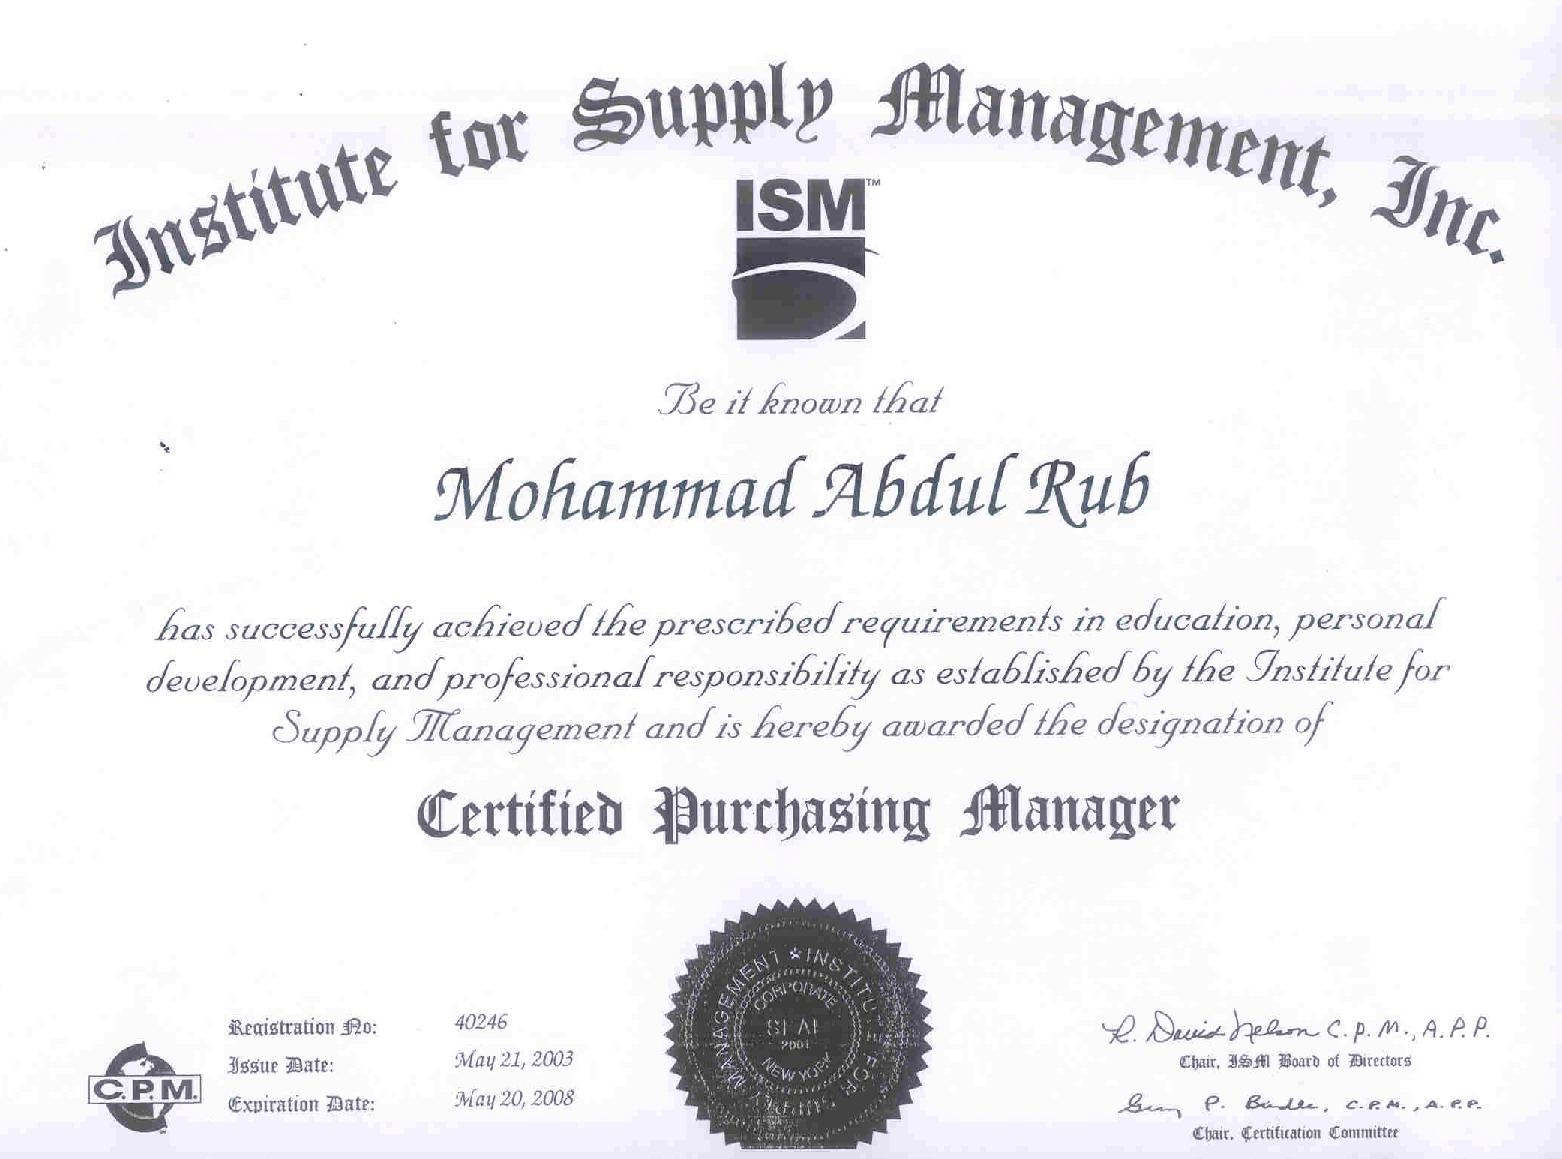 Abdul rub mohammad bayt cpm certified purchasing manager institute of supply management certificate xflitez Image collections